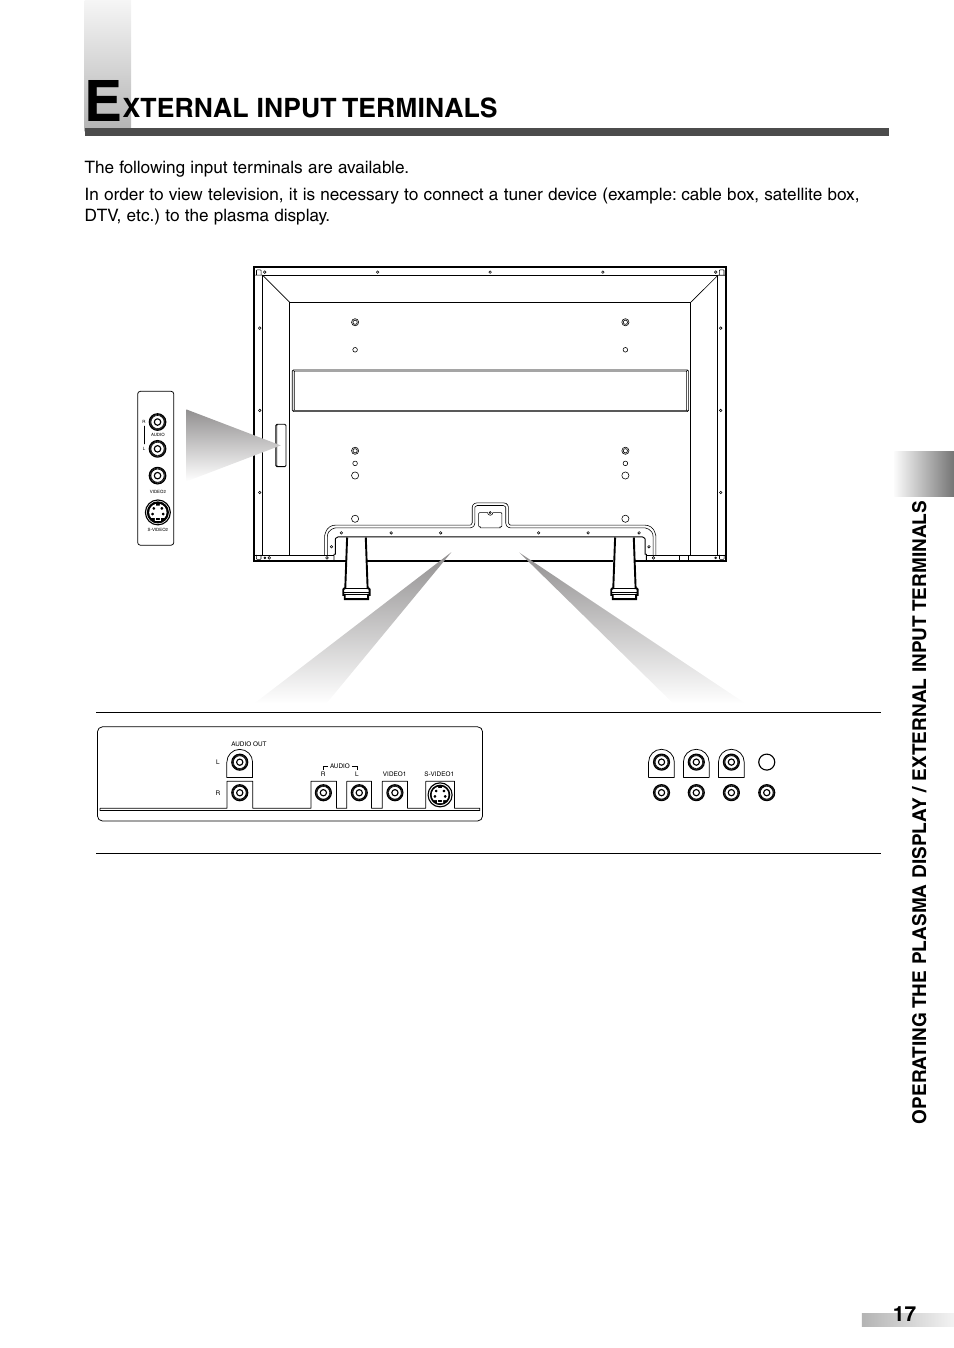 xternal input terminals sylvania 6842pe m user manual page 17 28 rh manualsdir com